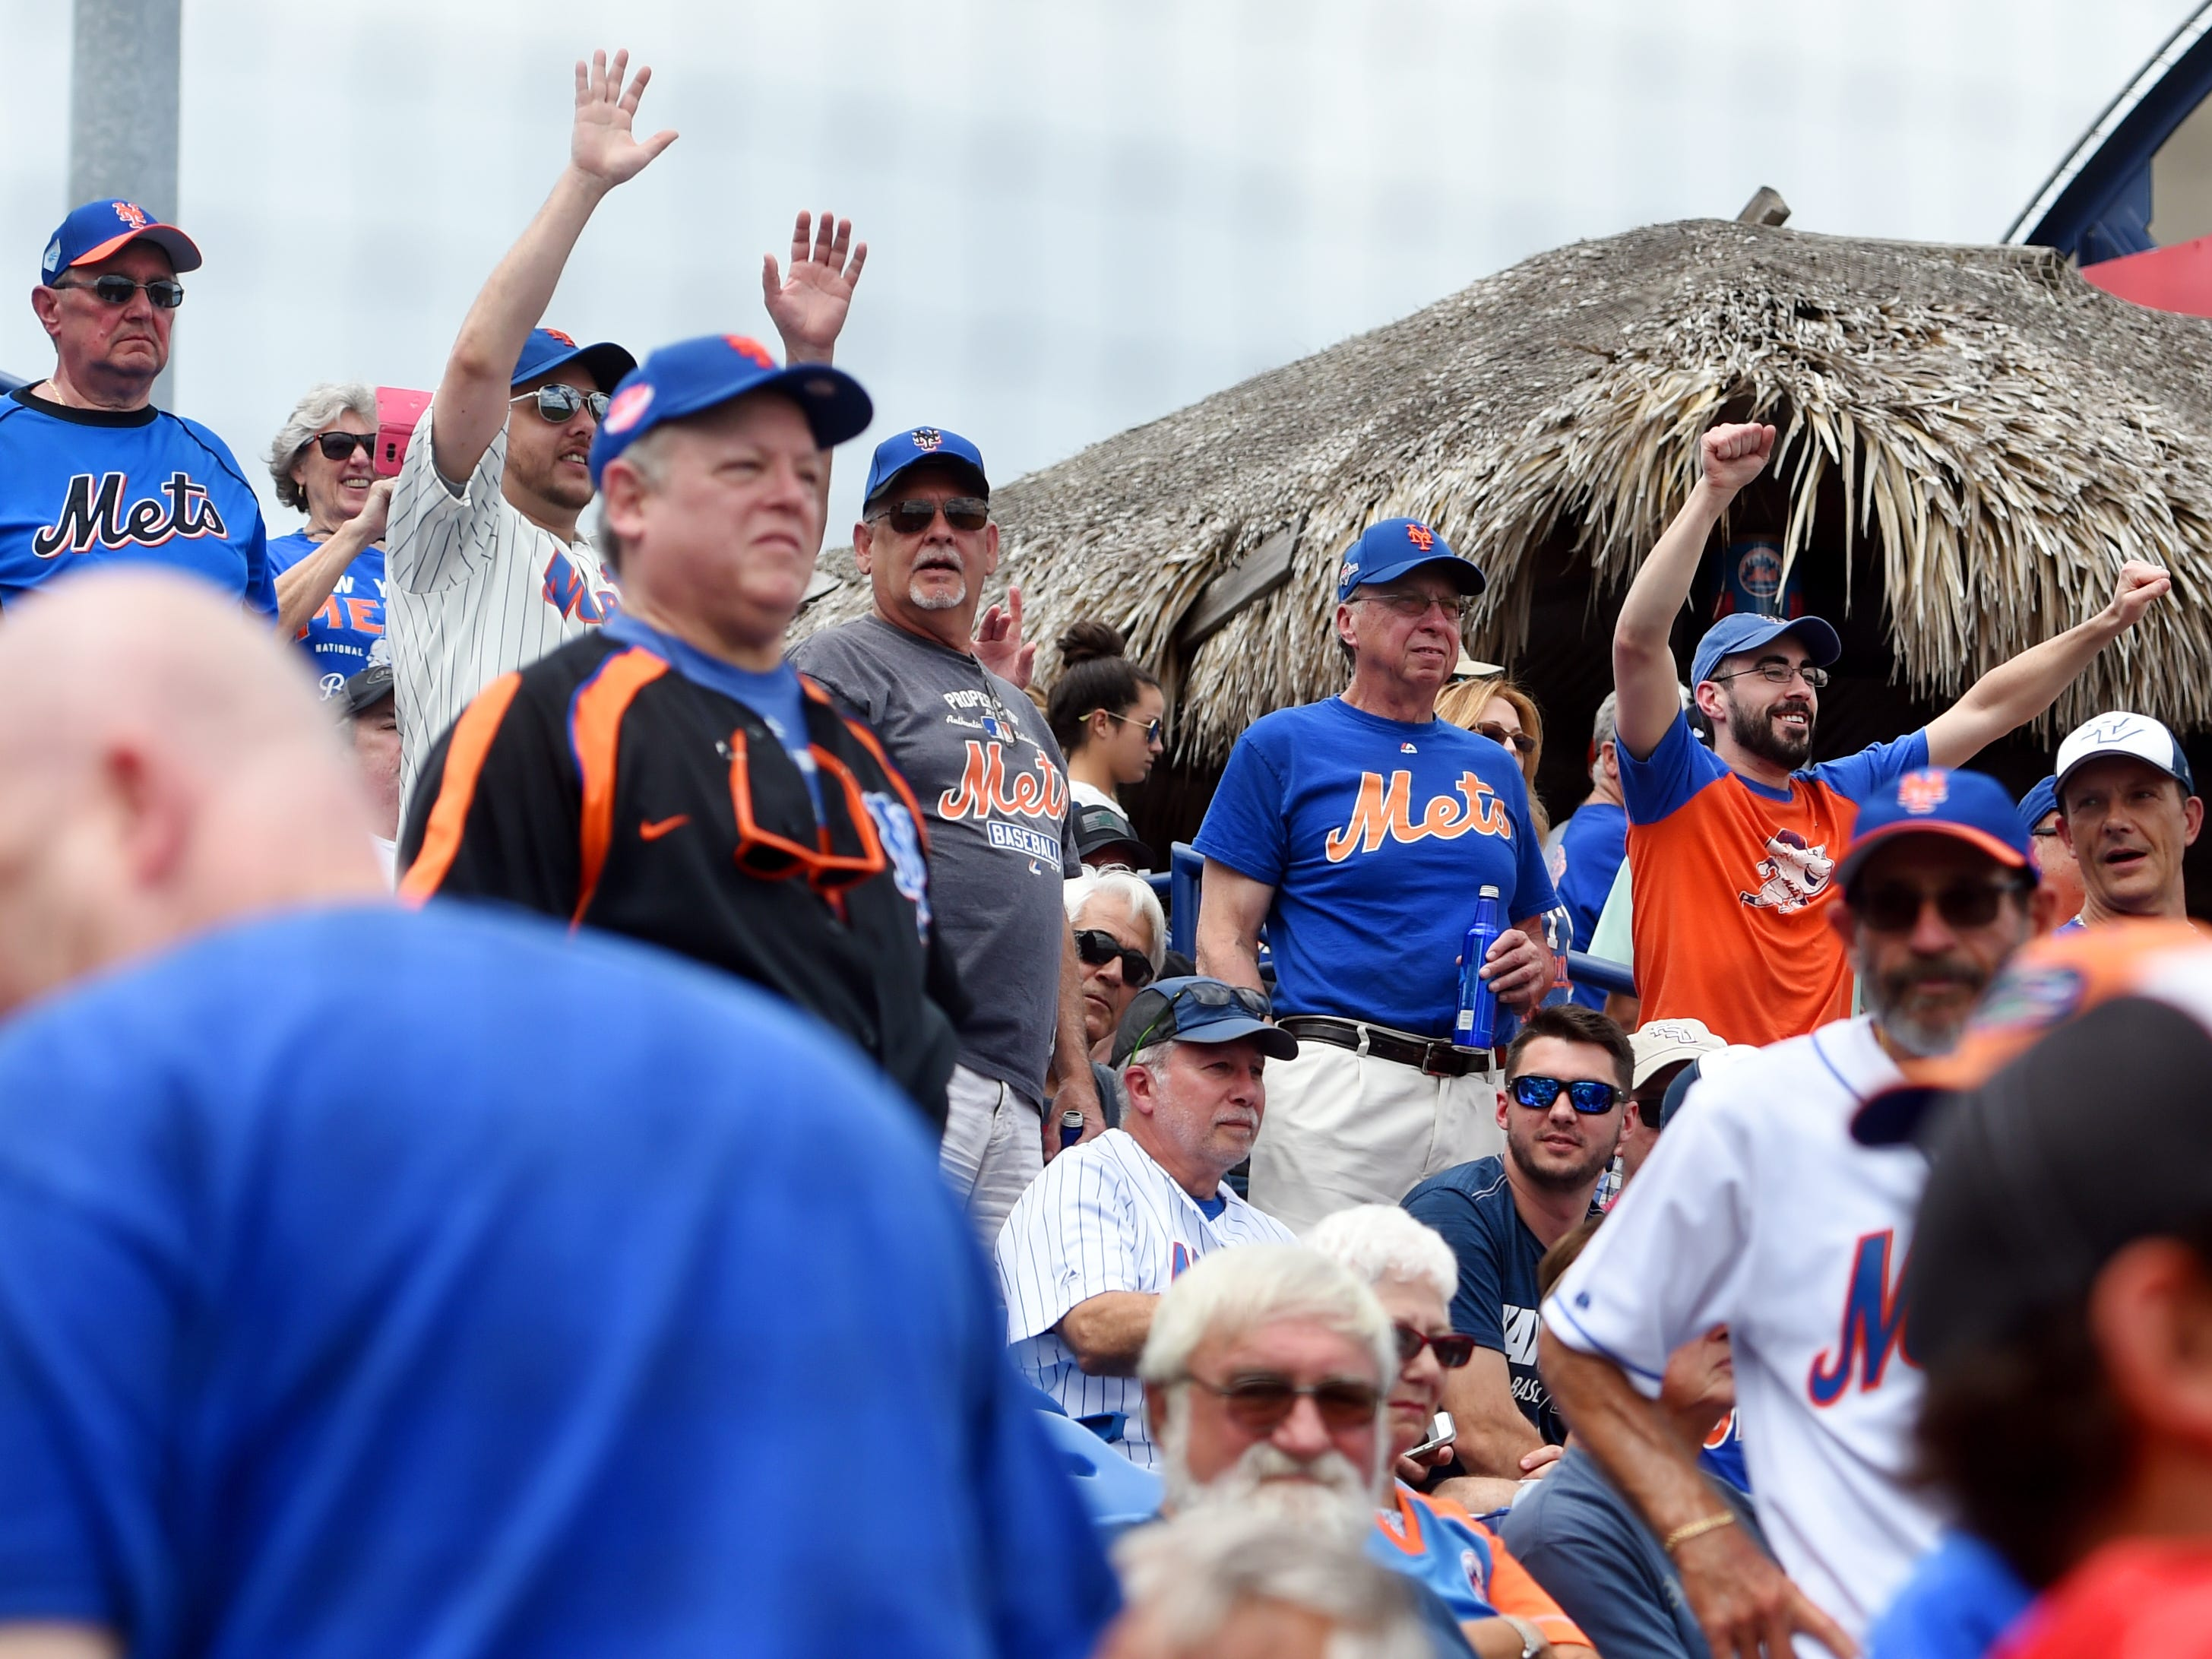 Fans begin to cheer as the New York Mets take the field for a spring training game against the Miami Marlins on Thursday, March 21, 2019 at First Data Field in Port St. Lucie.